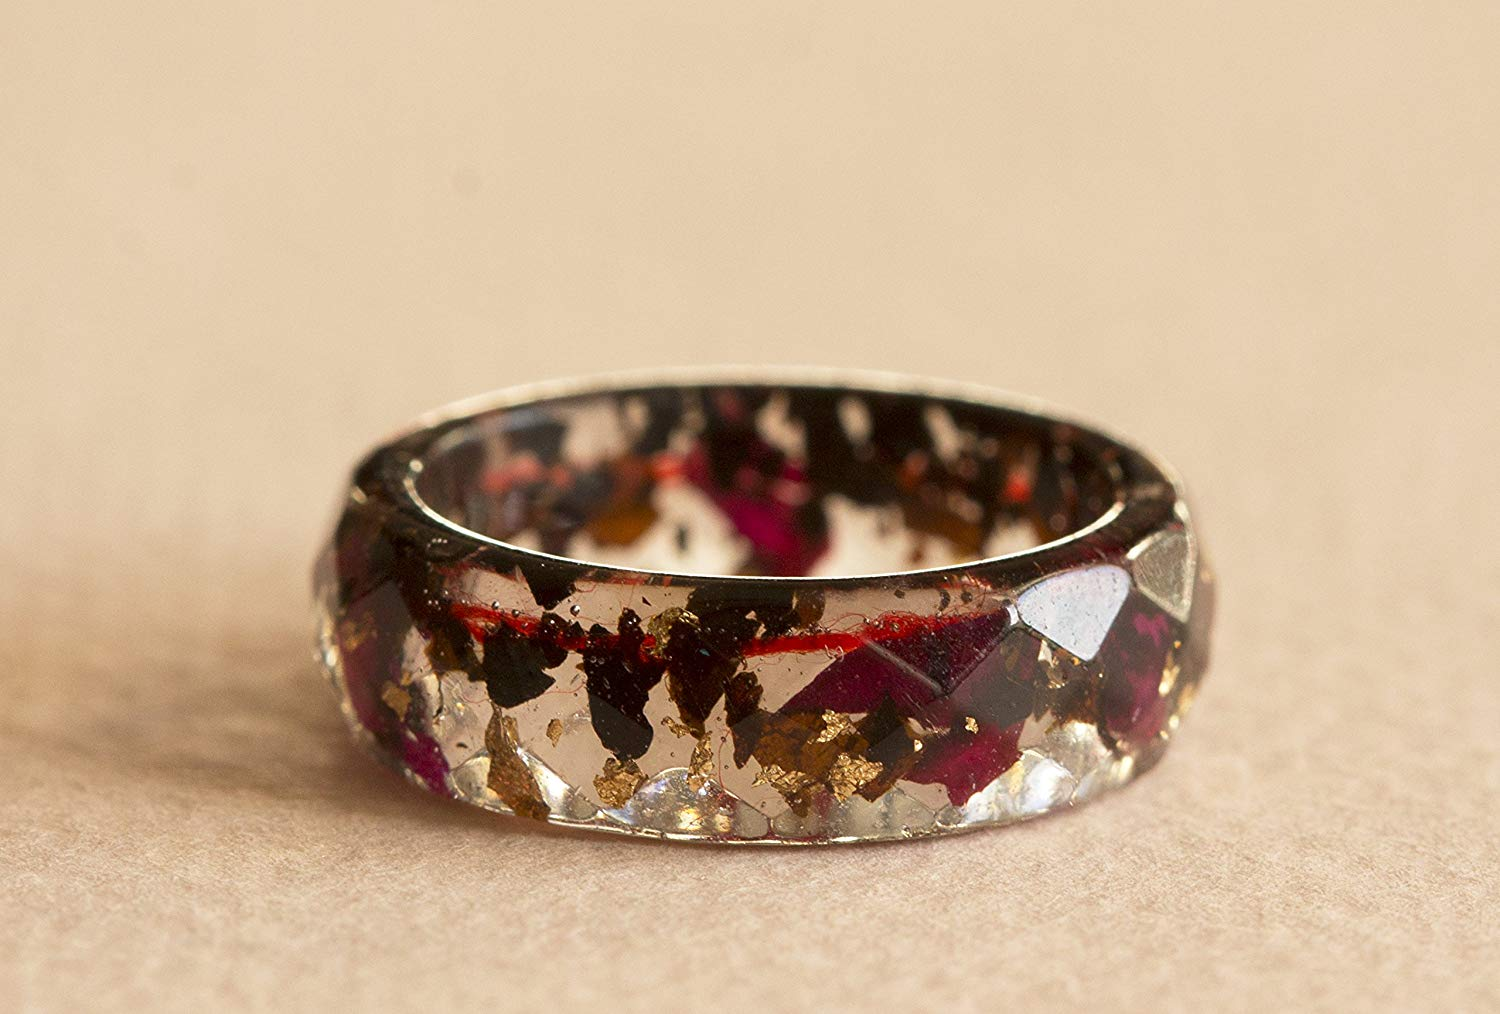 Resin Ring With Real Indian Black Tea Leaves, Rose Petals, Gold Flakes and Red Thread